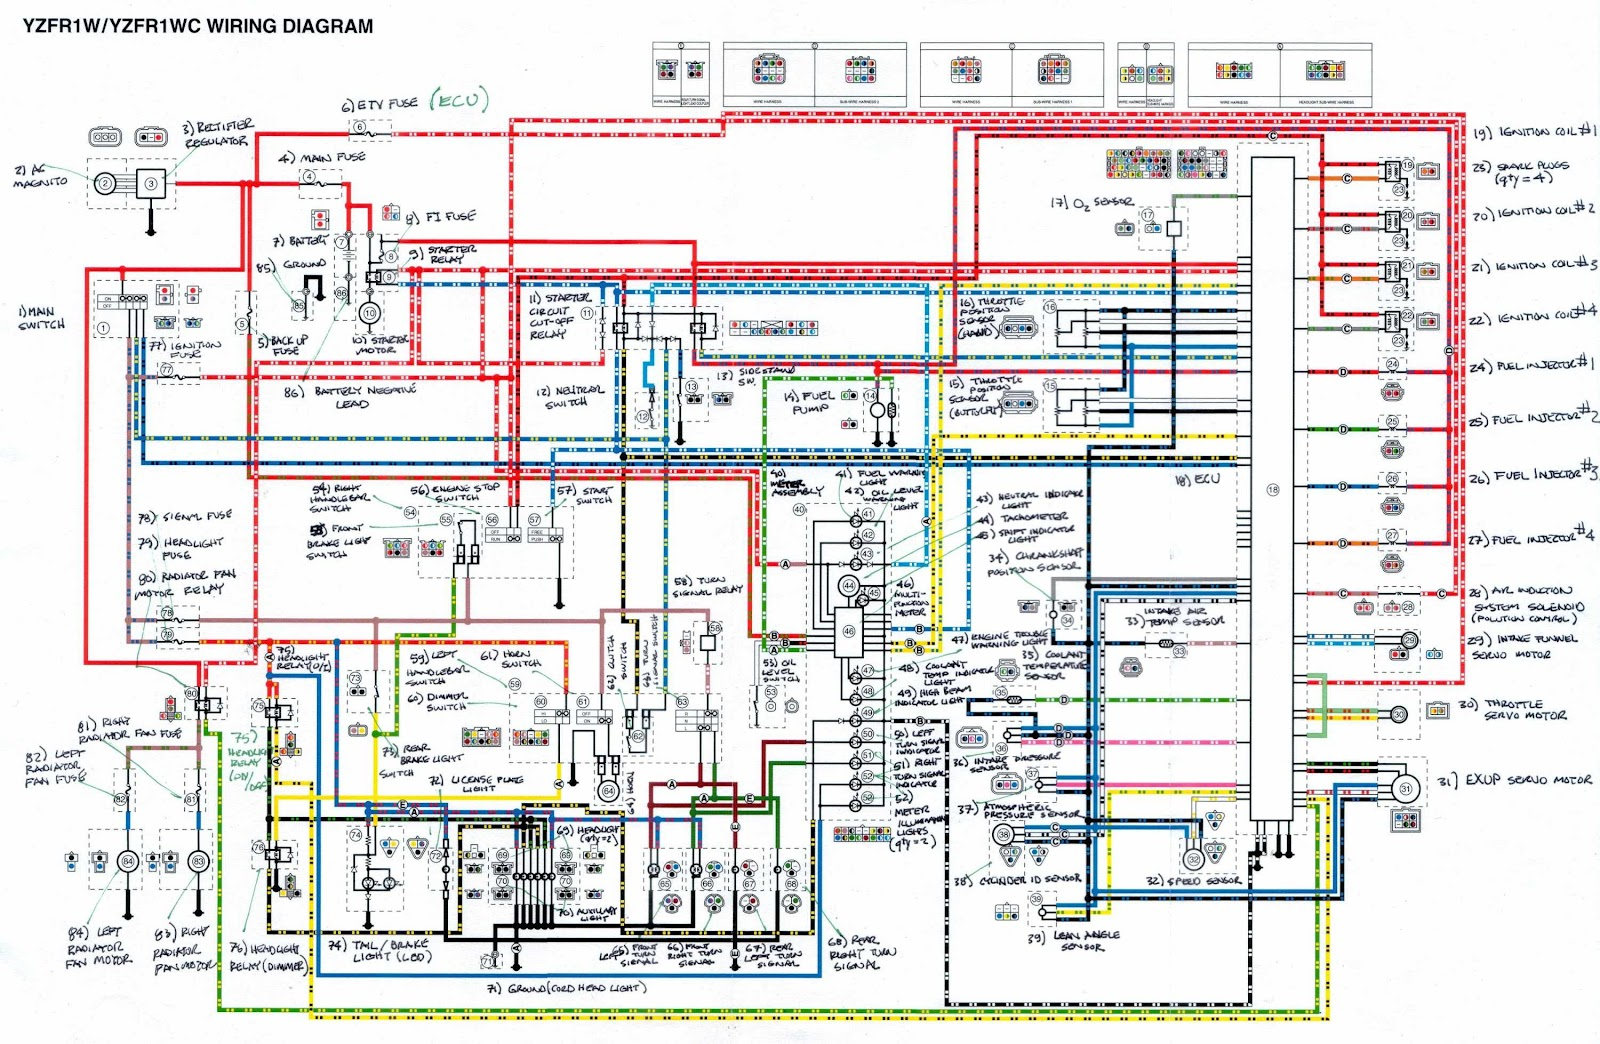 Yamaha V Star Fuse Box Auto Electrical Wiring Diagram 2000 Yamaha Blaster  Wiring Diagram 2000 Yamaha Grizzly 600 Wiring Diagram Hecho